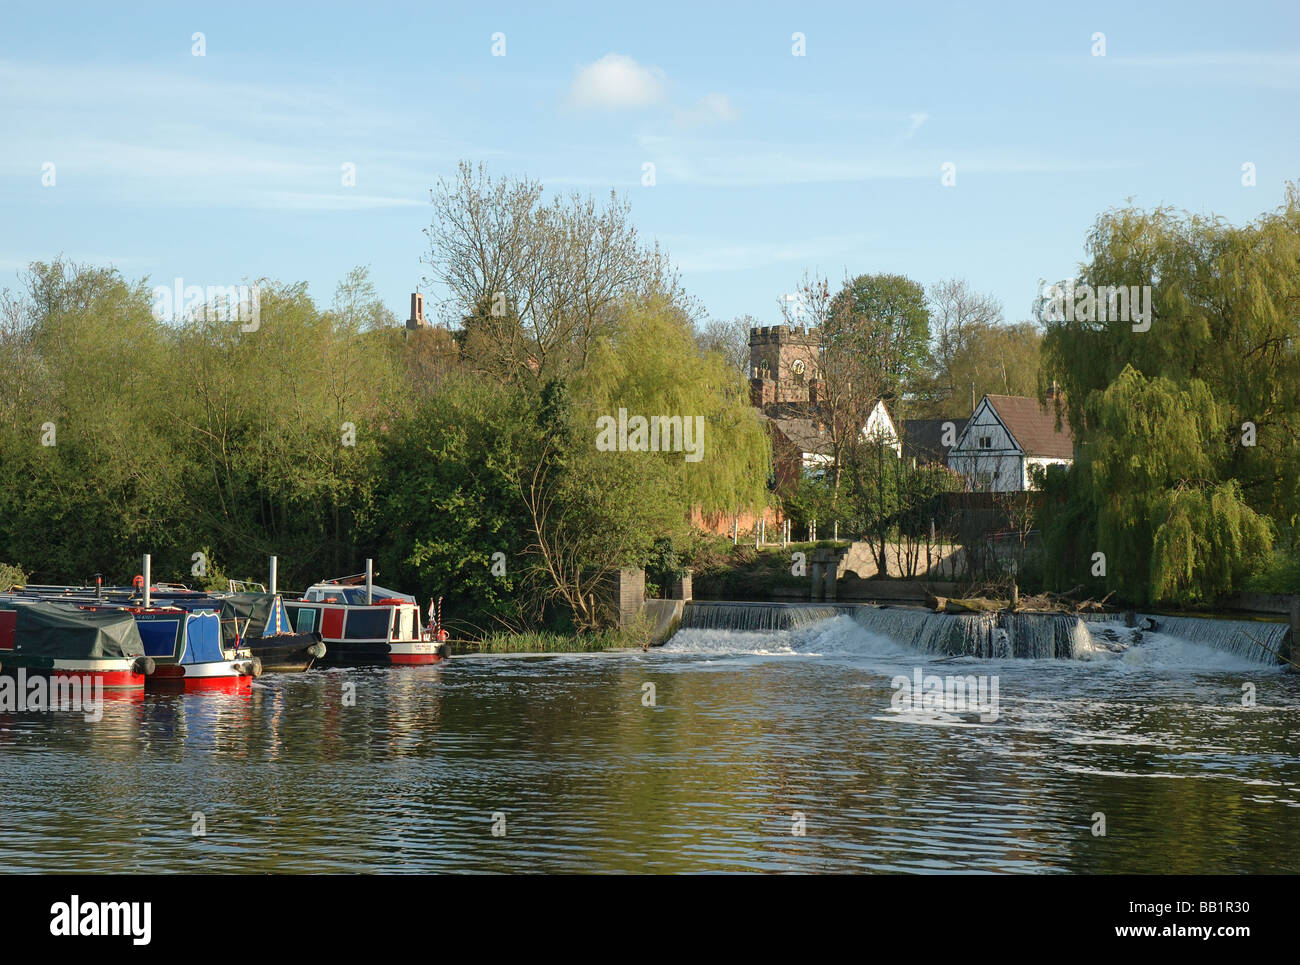 the River Soar, Mountsorrel, Leicestershire, England, UK - Stock Image